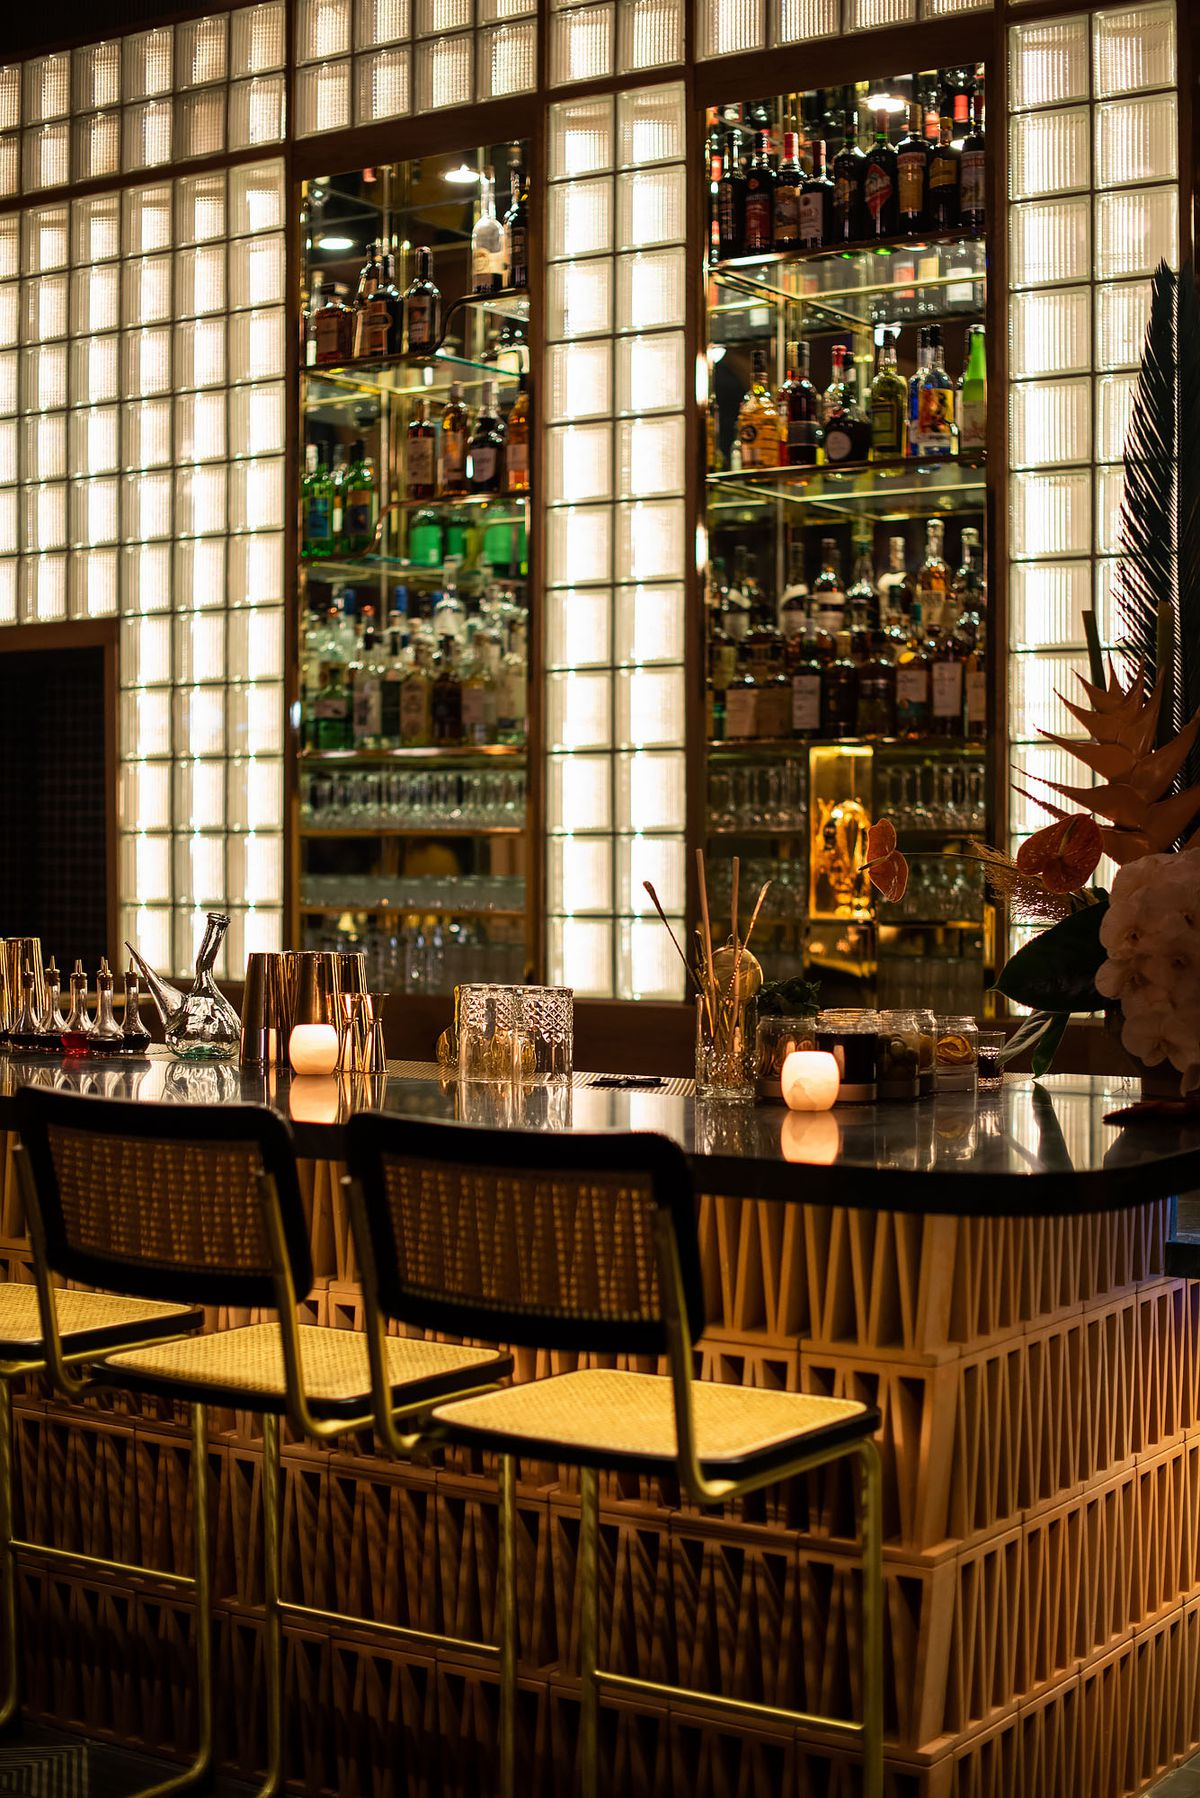 A back bar set in with glass blocks and wicker chairs.